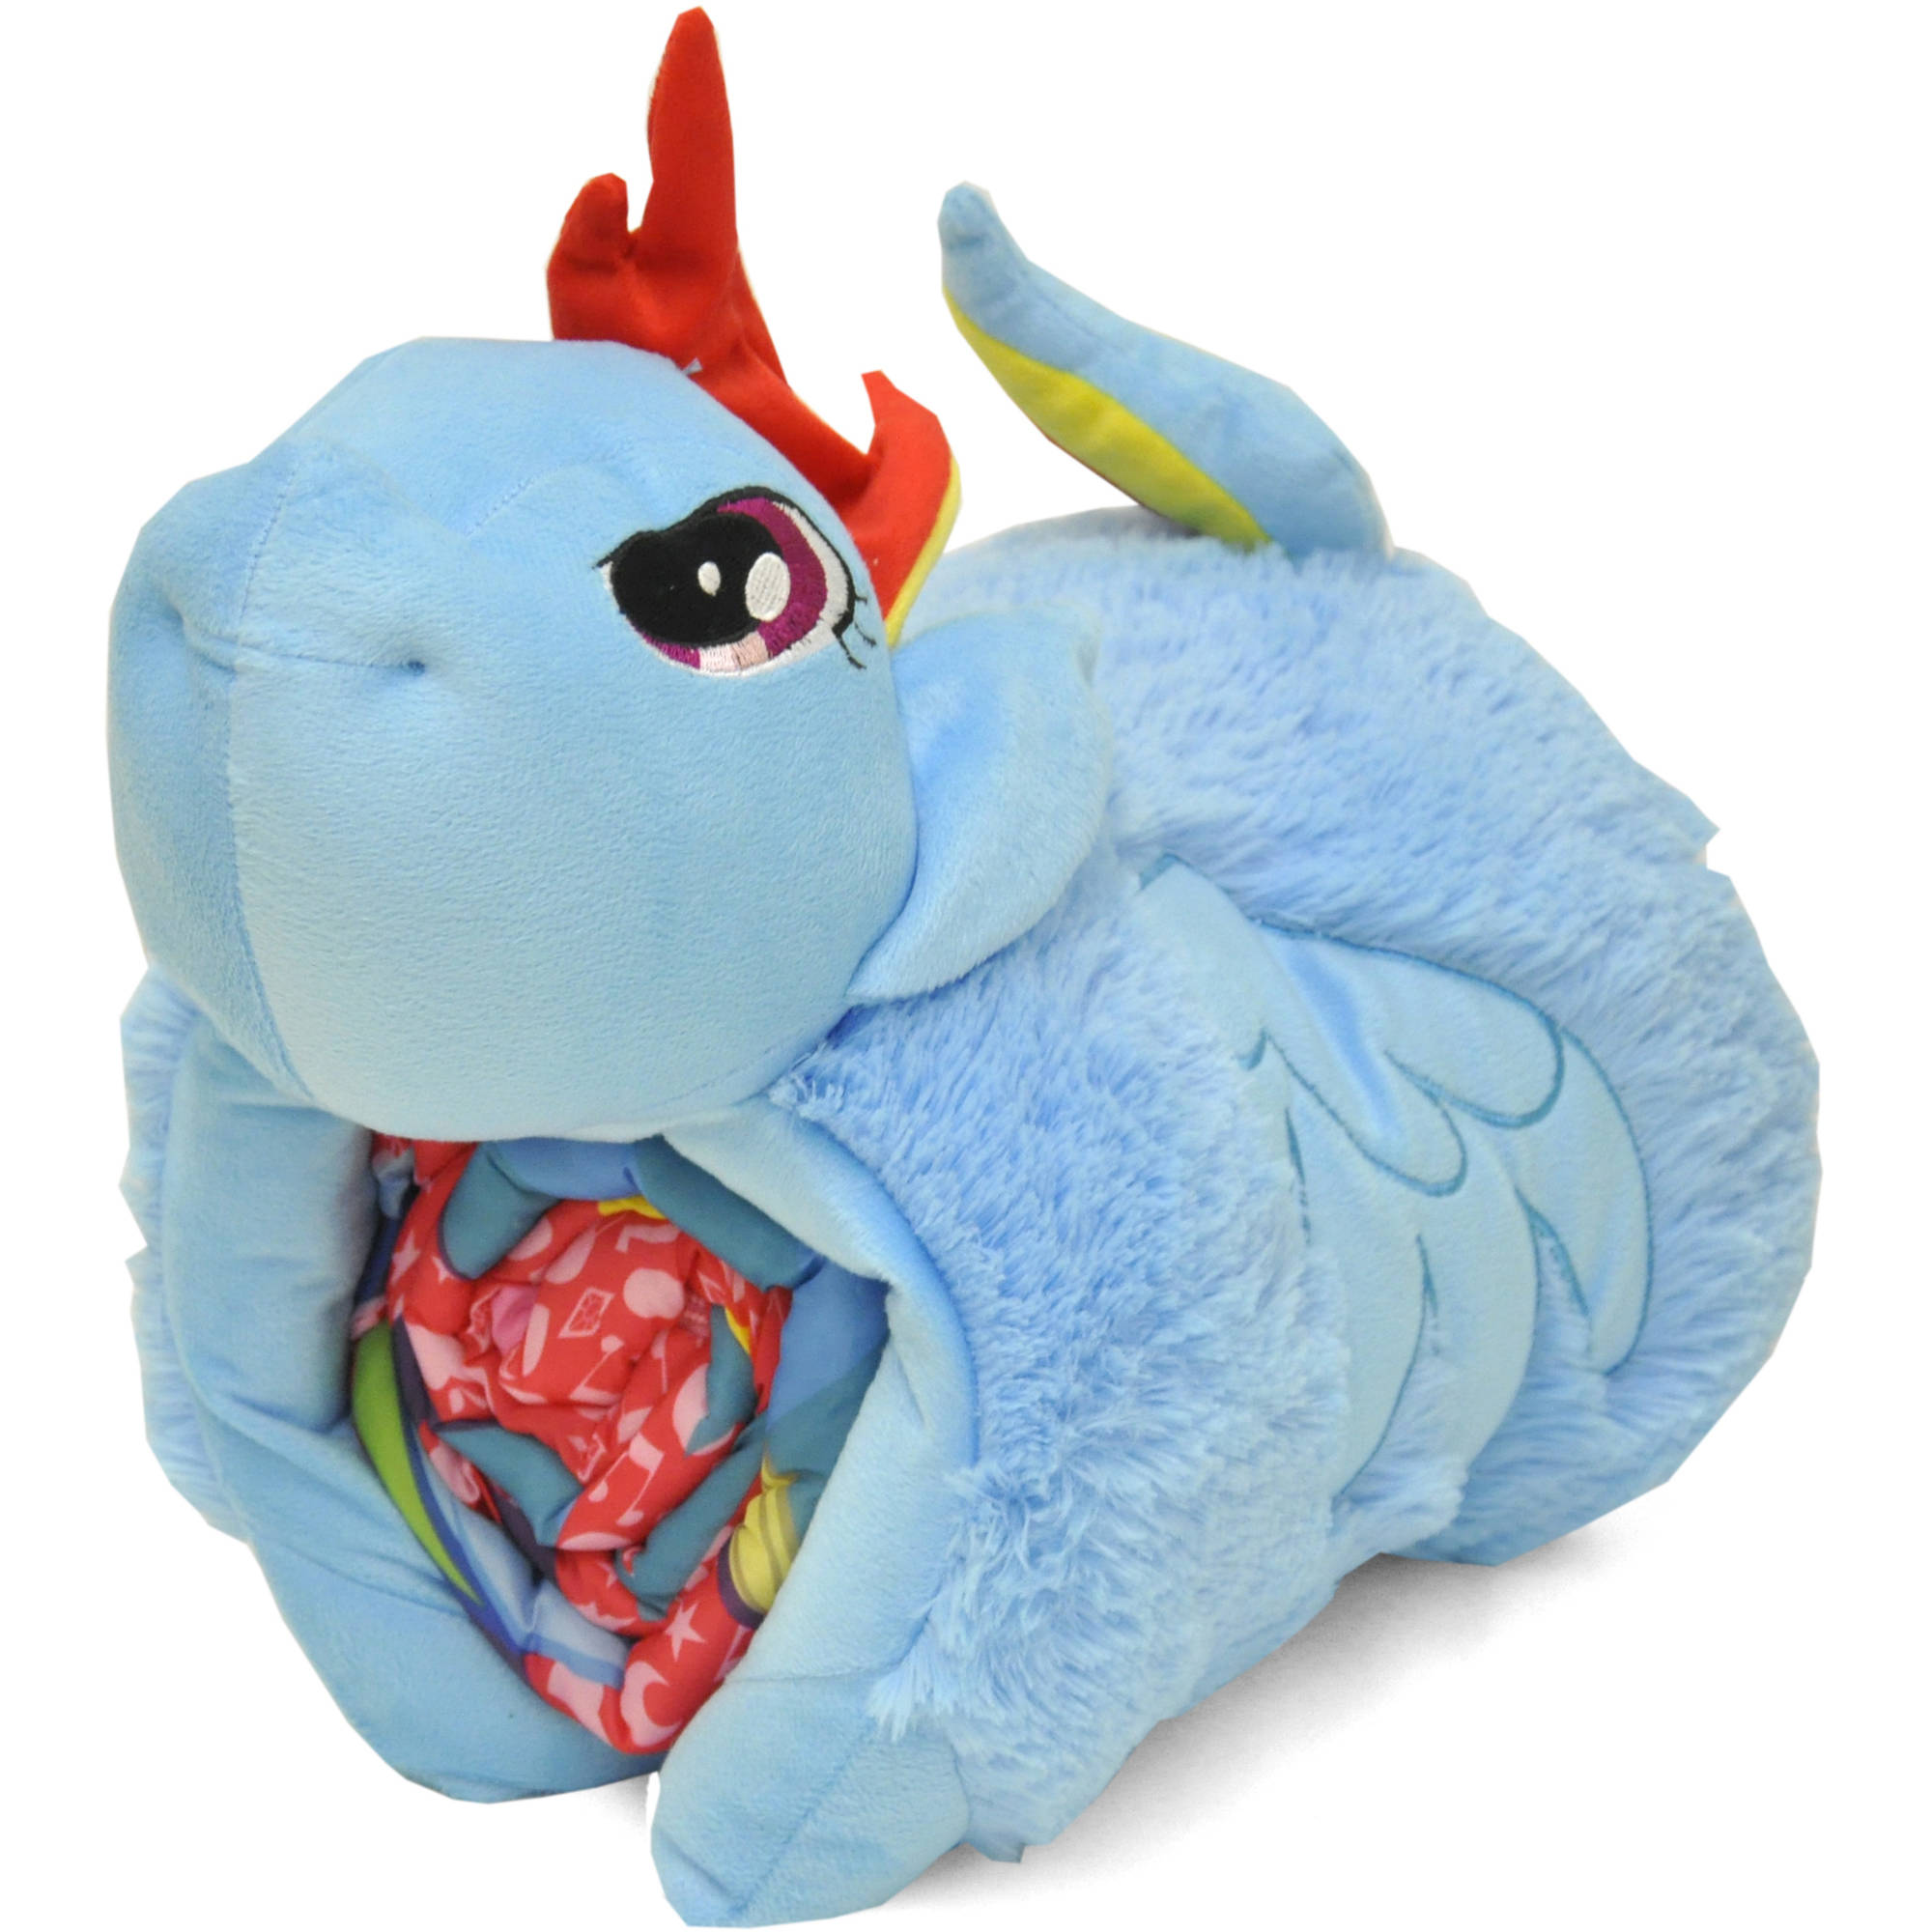 My Little Pony 3D Pillow With Sleeping Bag